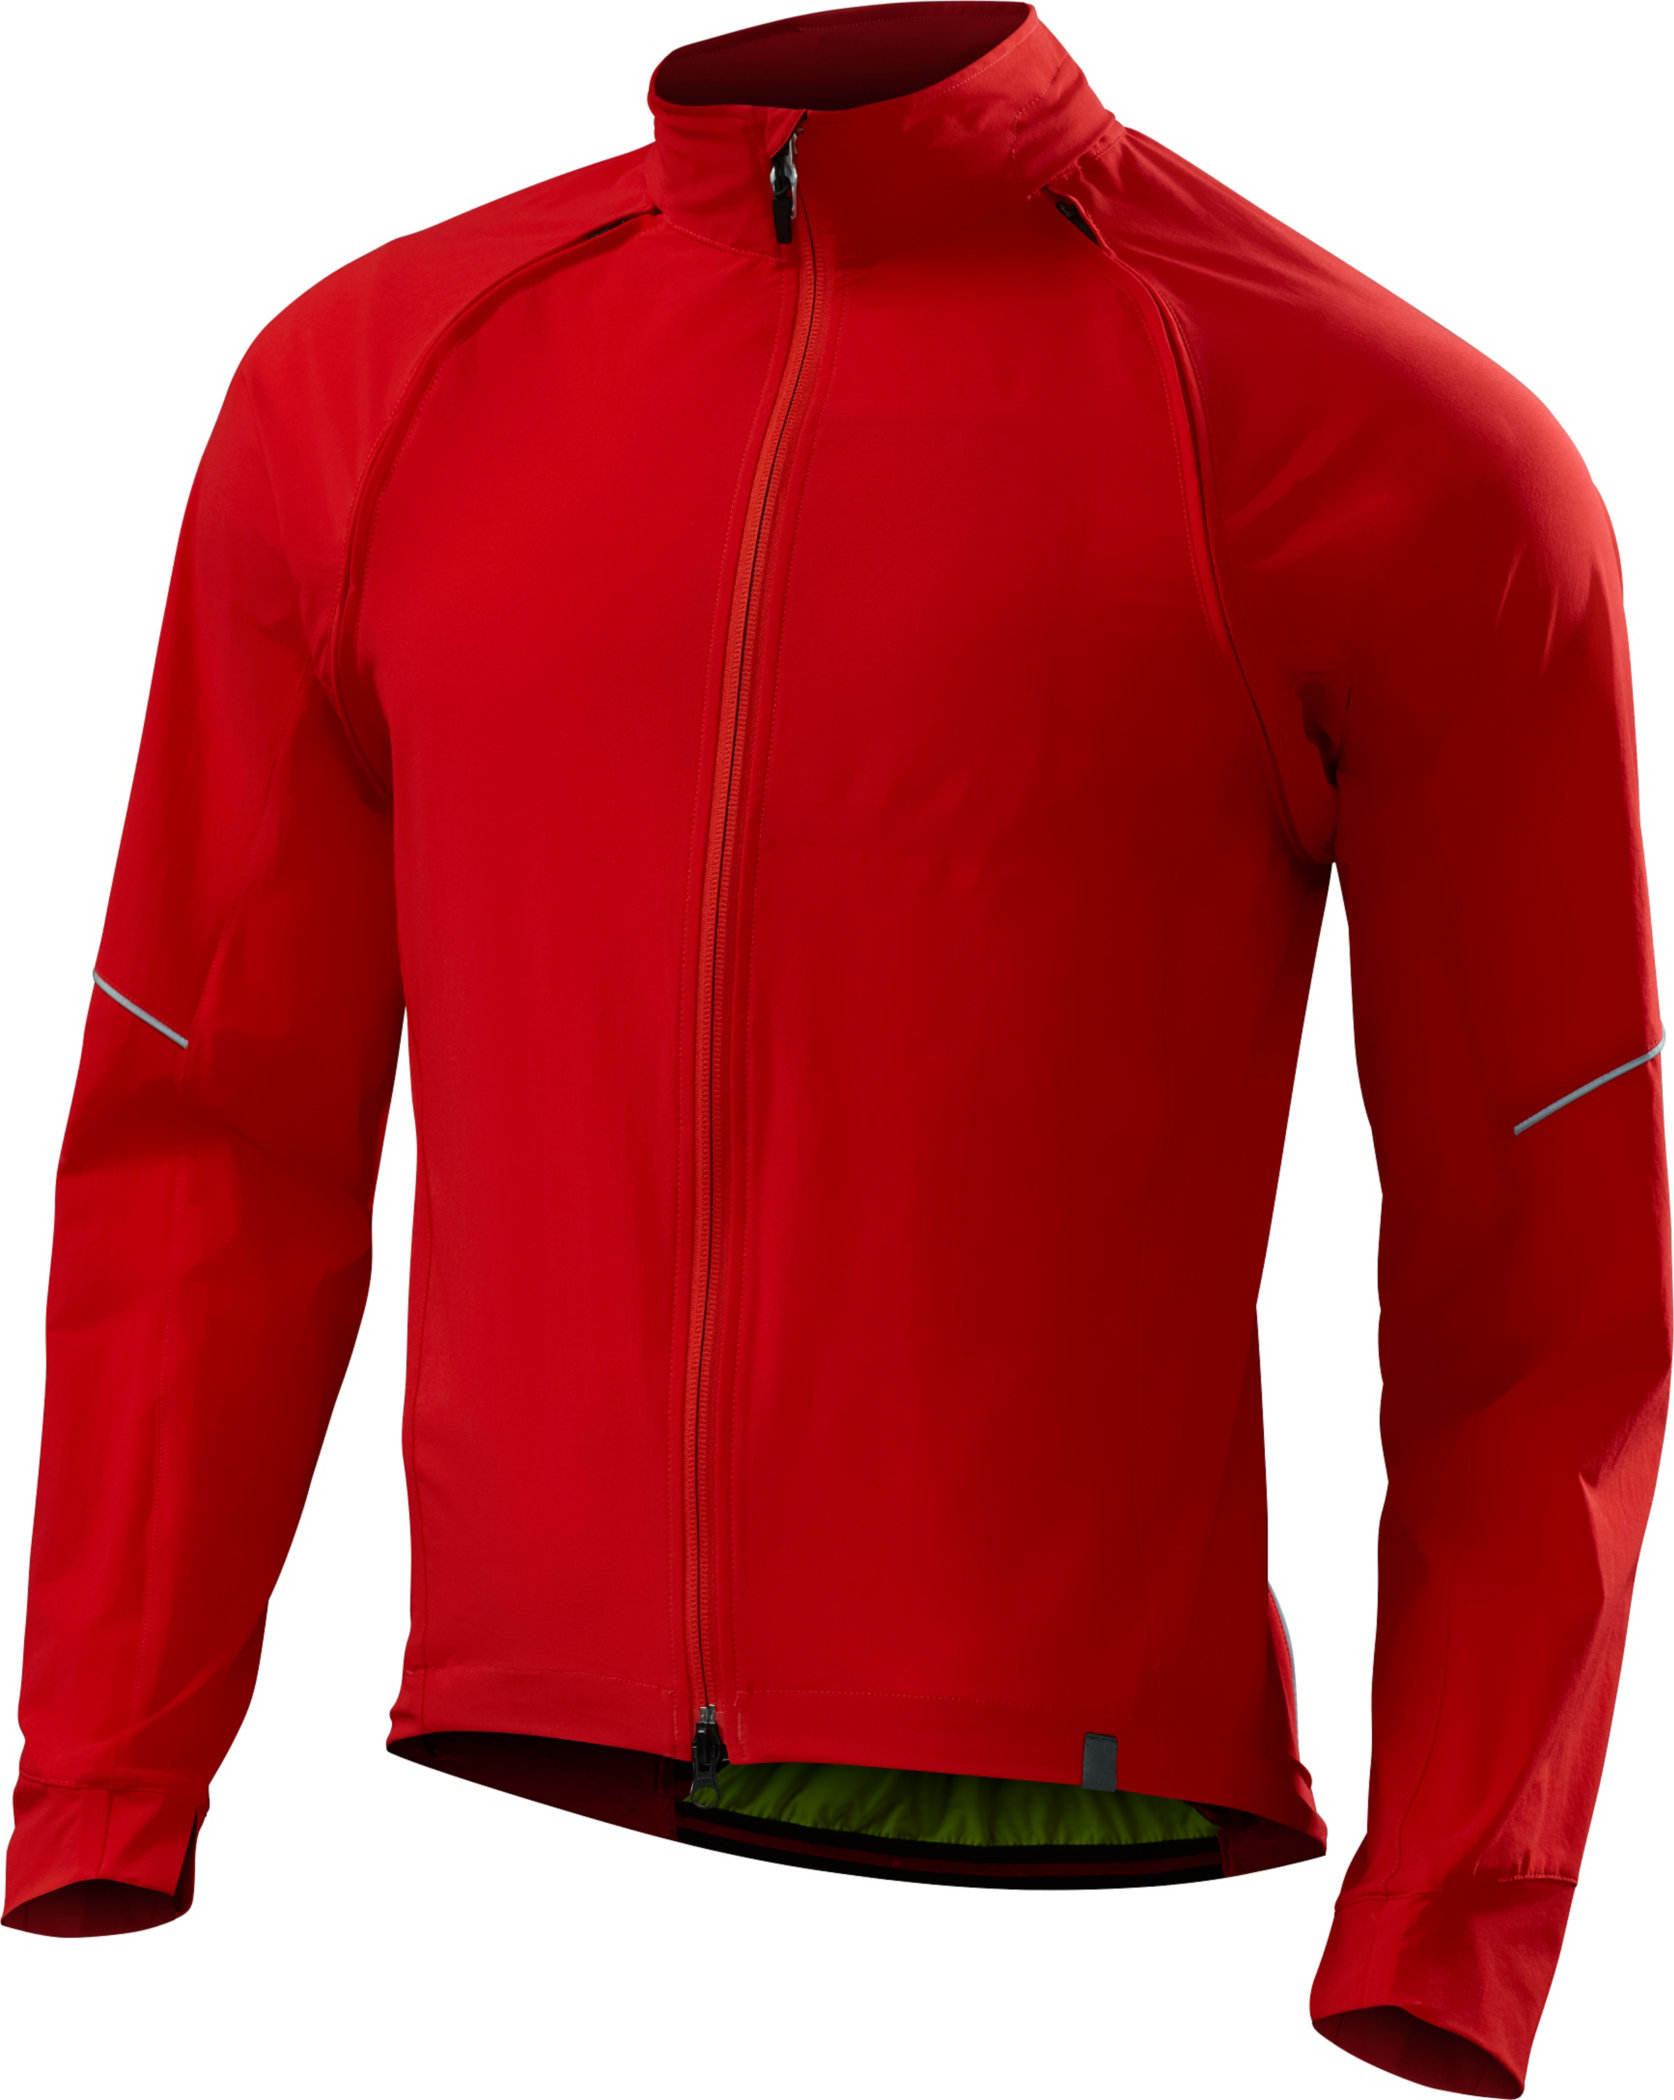 SPECIALIZED DEFLECT HYBRID JACKET RED M - Alpha Bikes